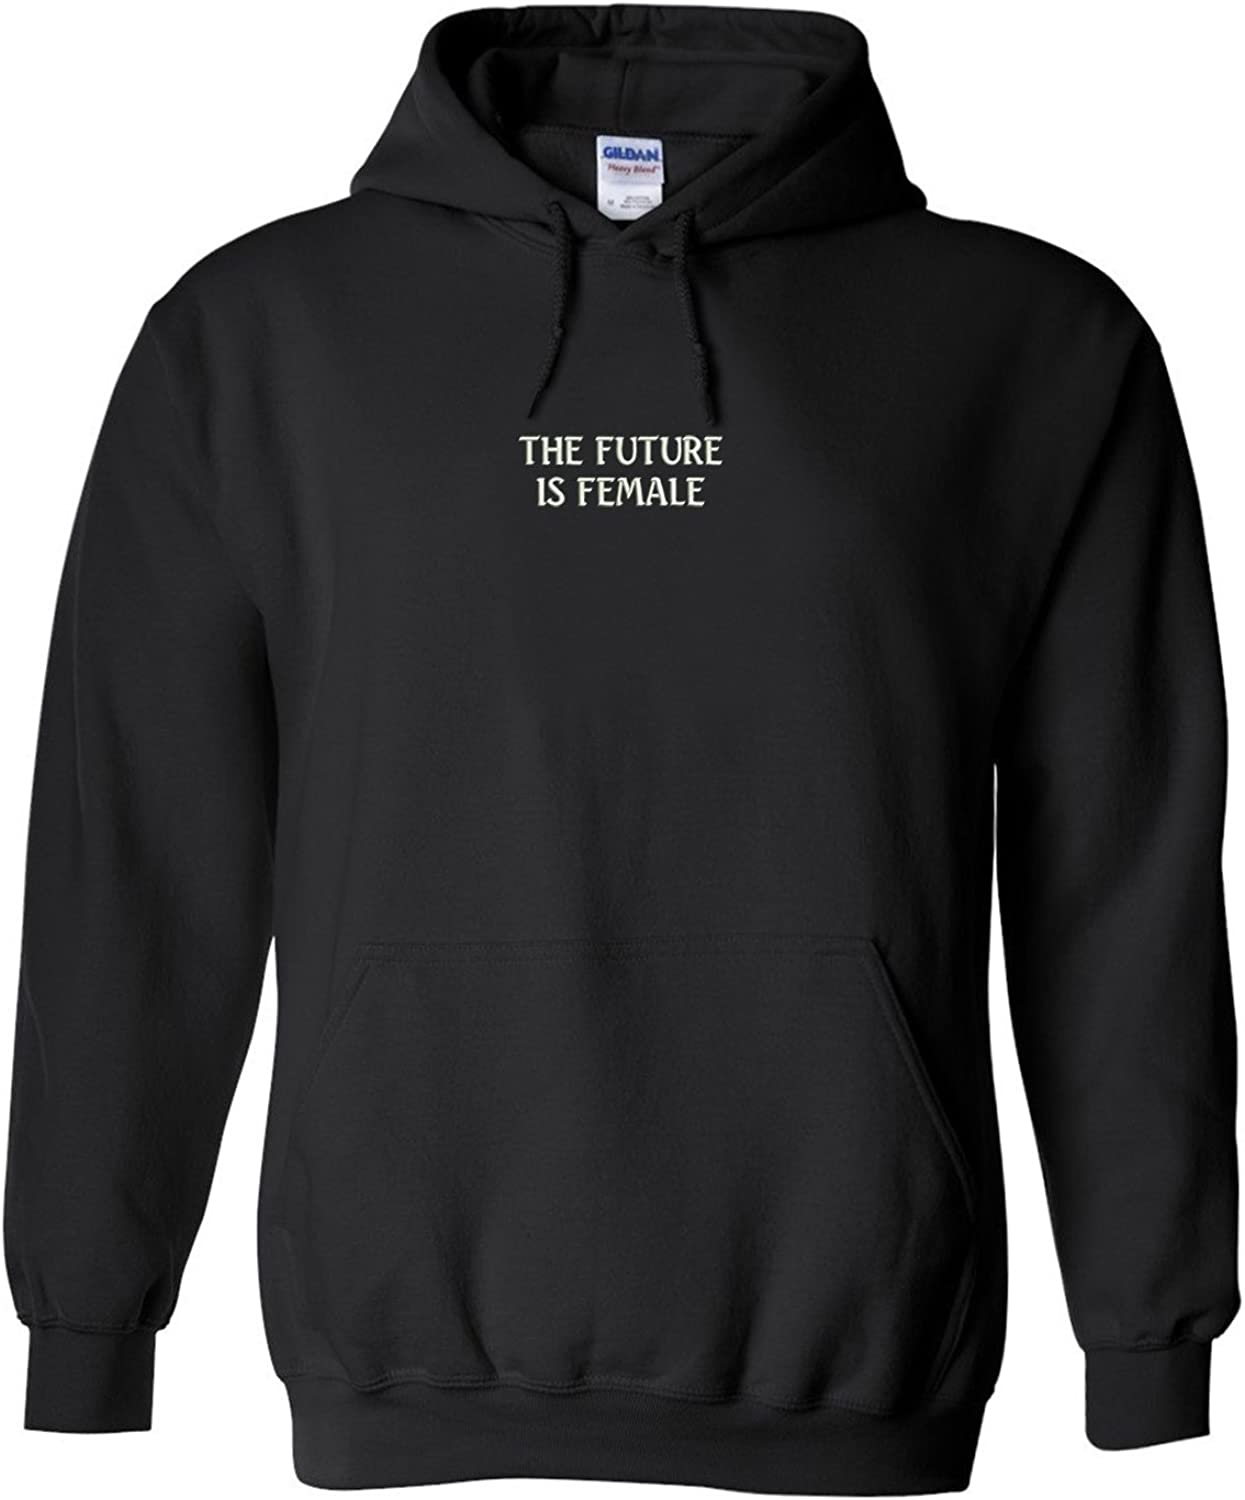 Trendy Apparel Shop The Future is Female Embroidered Heavy Blend Hoodie